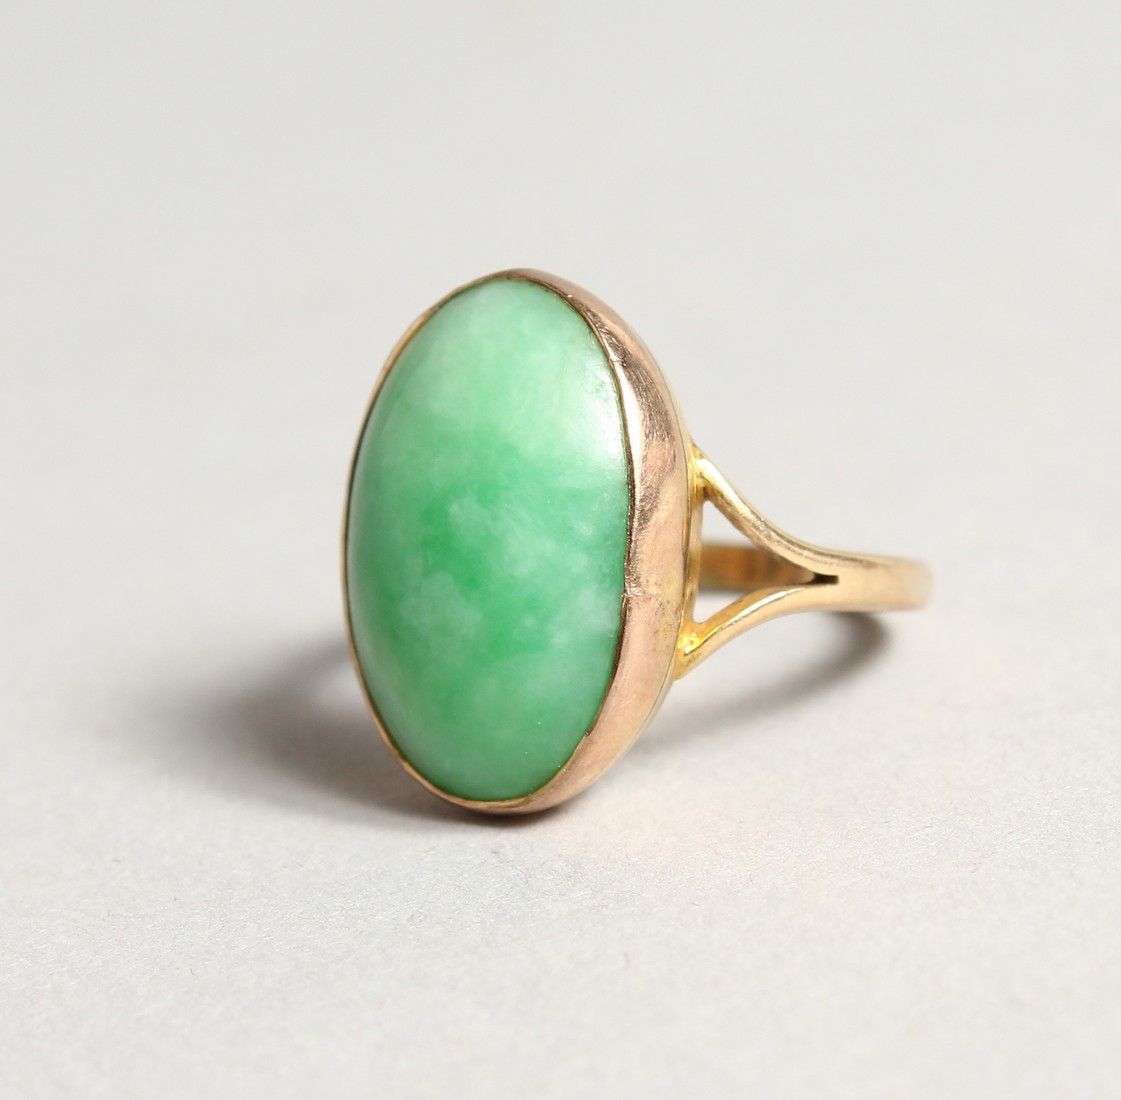 A GOLD AND JADE RING